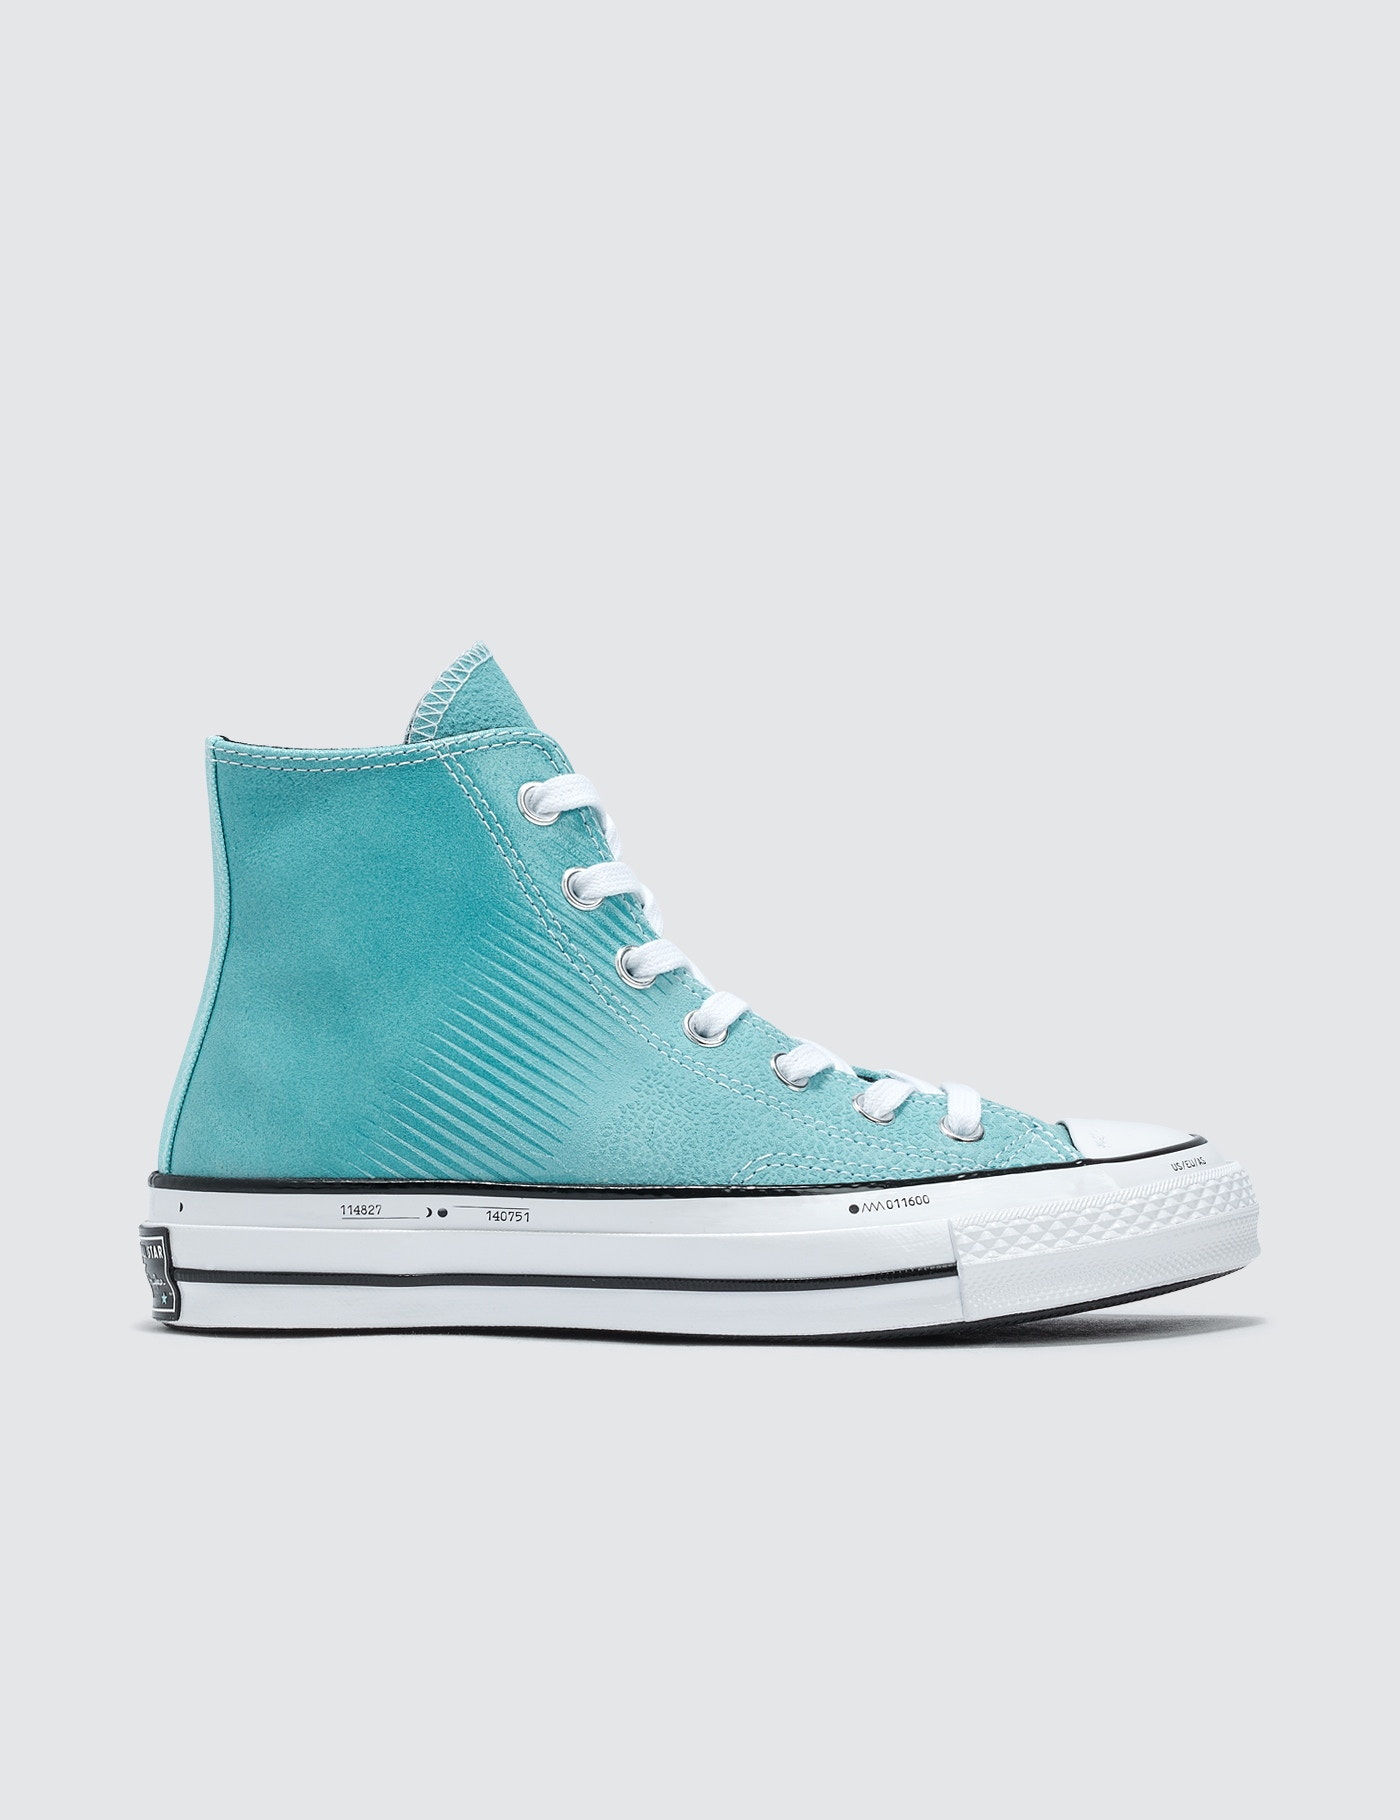 343f29ca0b66 Buy Original Converse Chuck Taylor All Star 70 at Indonesia